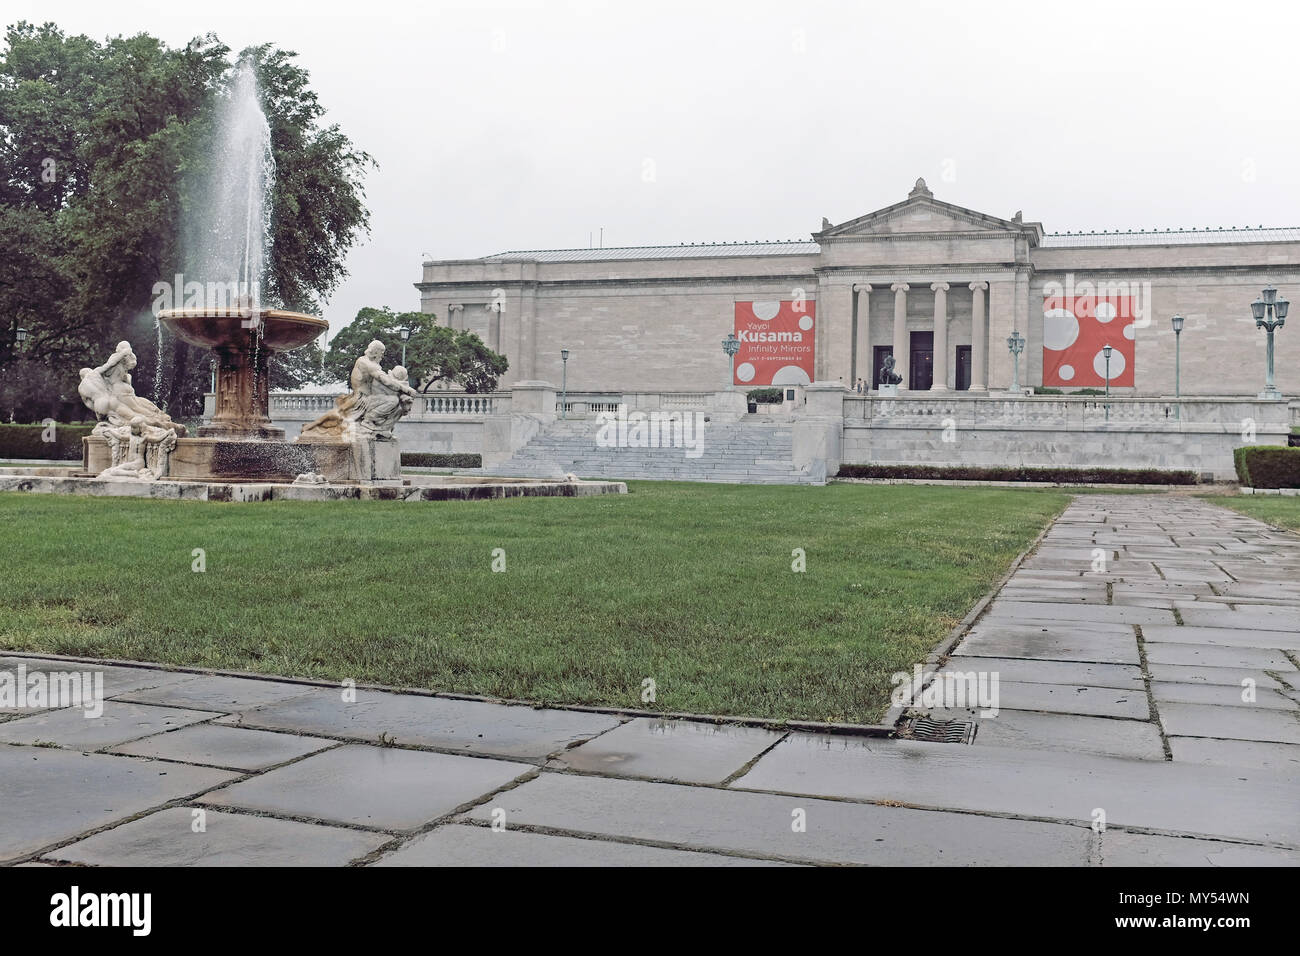 Chester Beach's 'Fountain of the Waters' adorns Wade Park in front of the south entrance of the Cleveland Museum of Art in Cleveland, Ohio, USA. - Stock Image